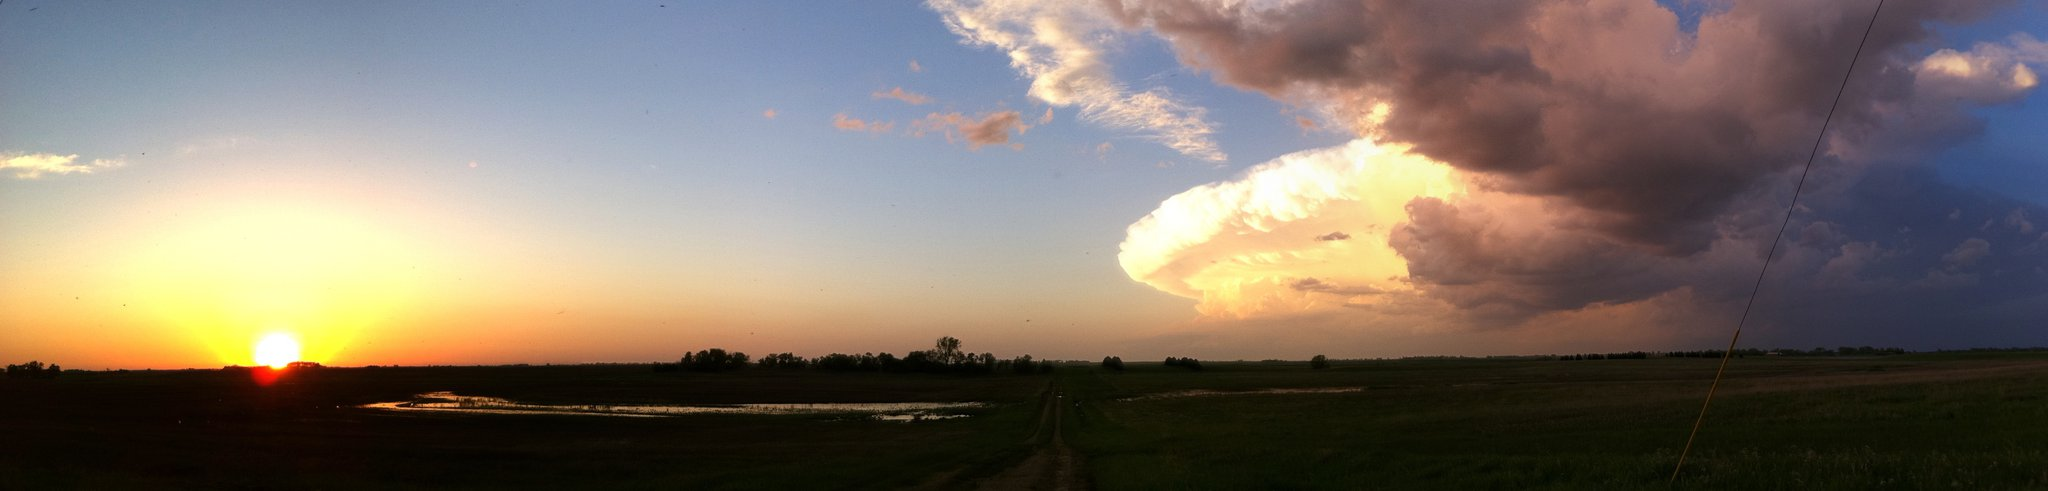 Supercell east of Minot, ND